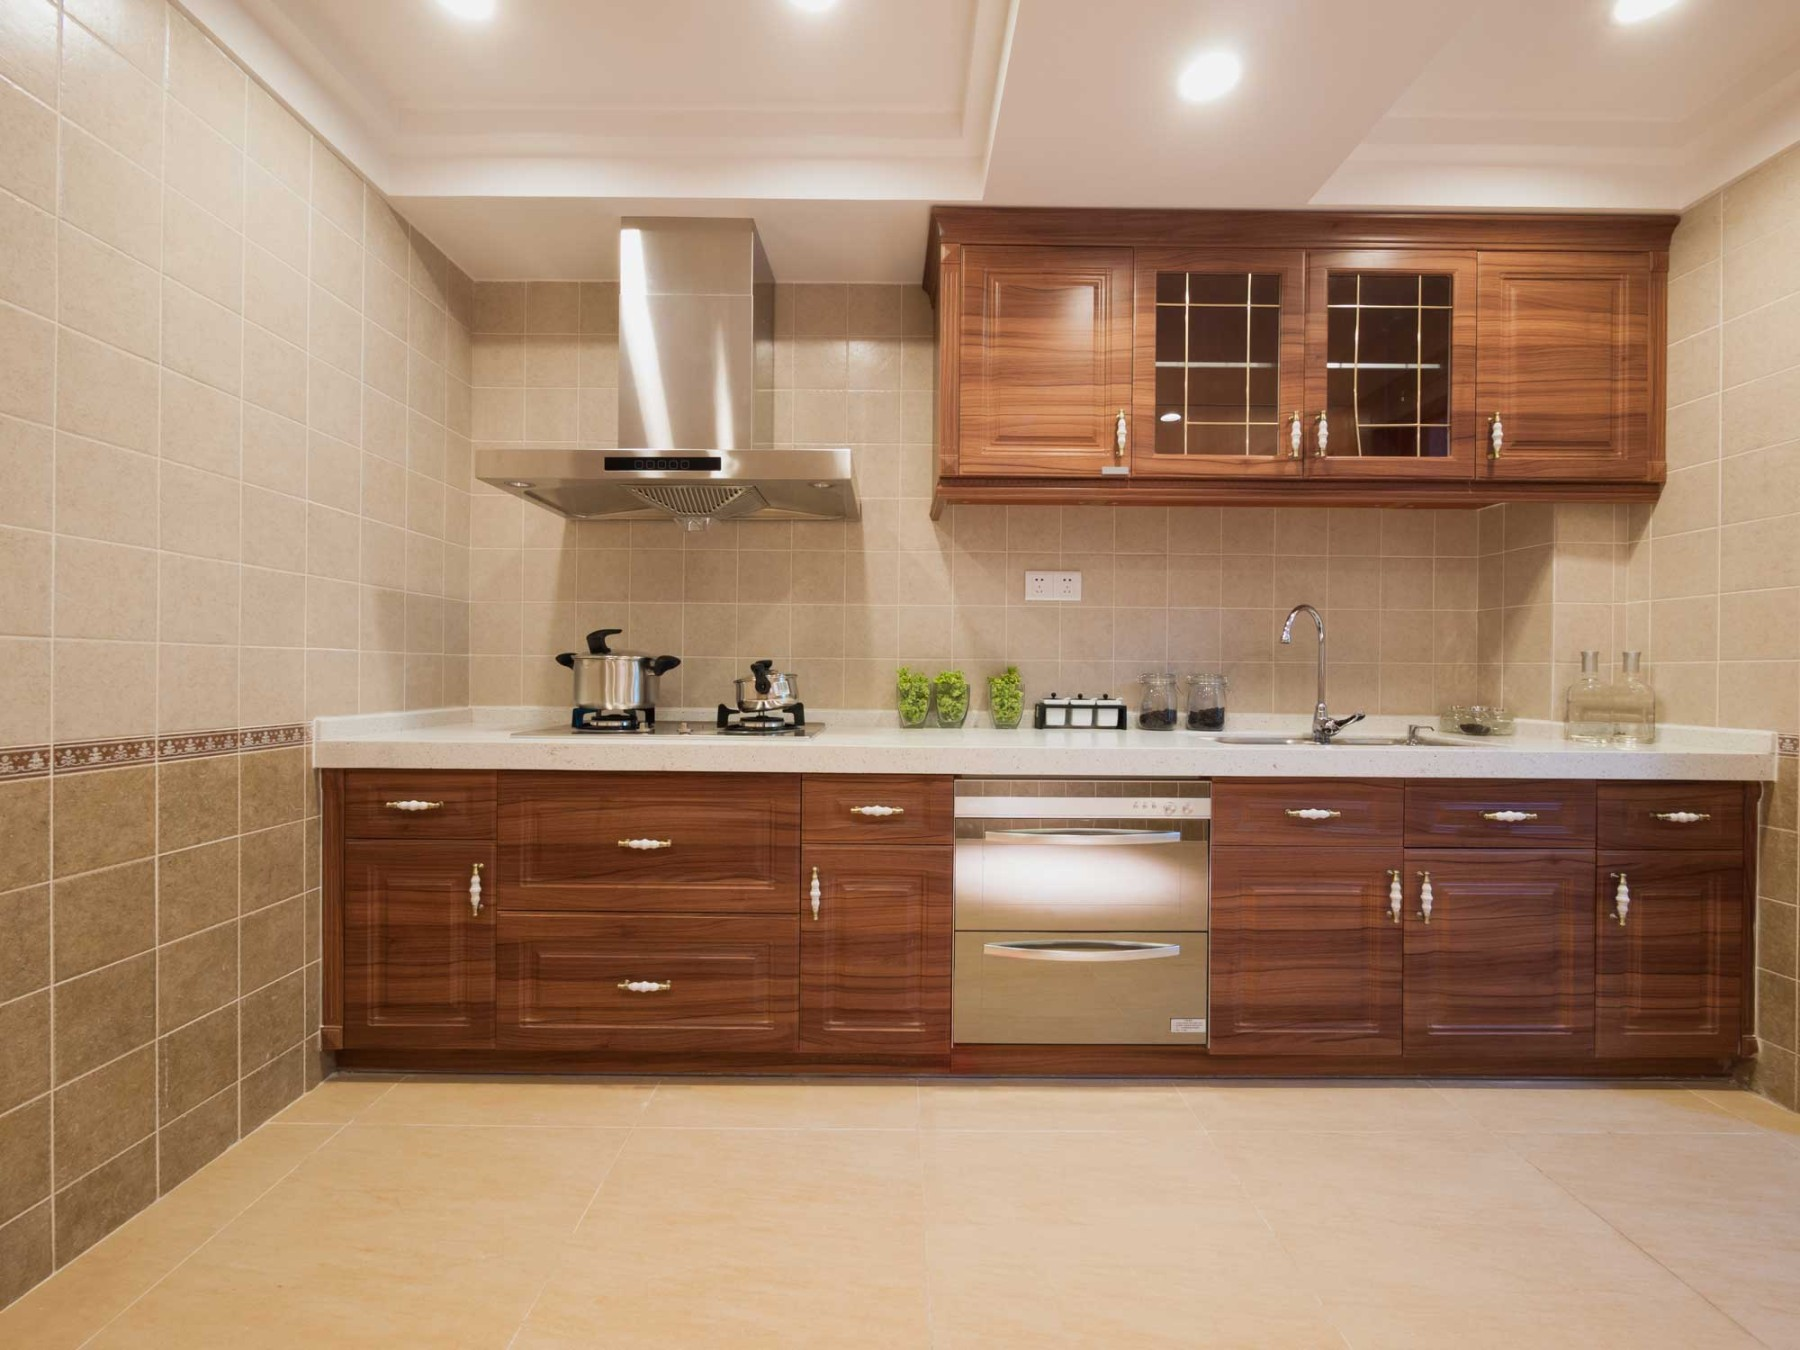 kitchen interior designers in kenya house tiles prices in kenya 905